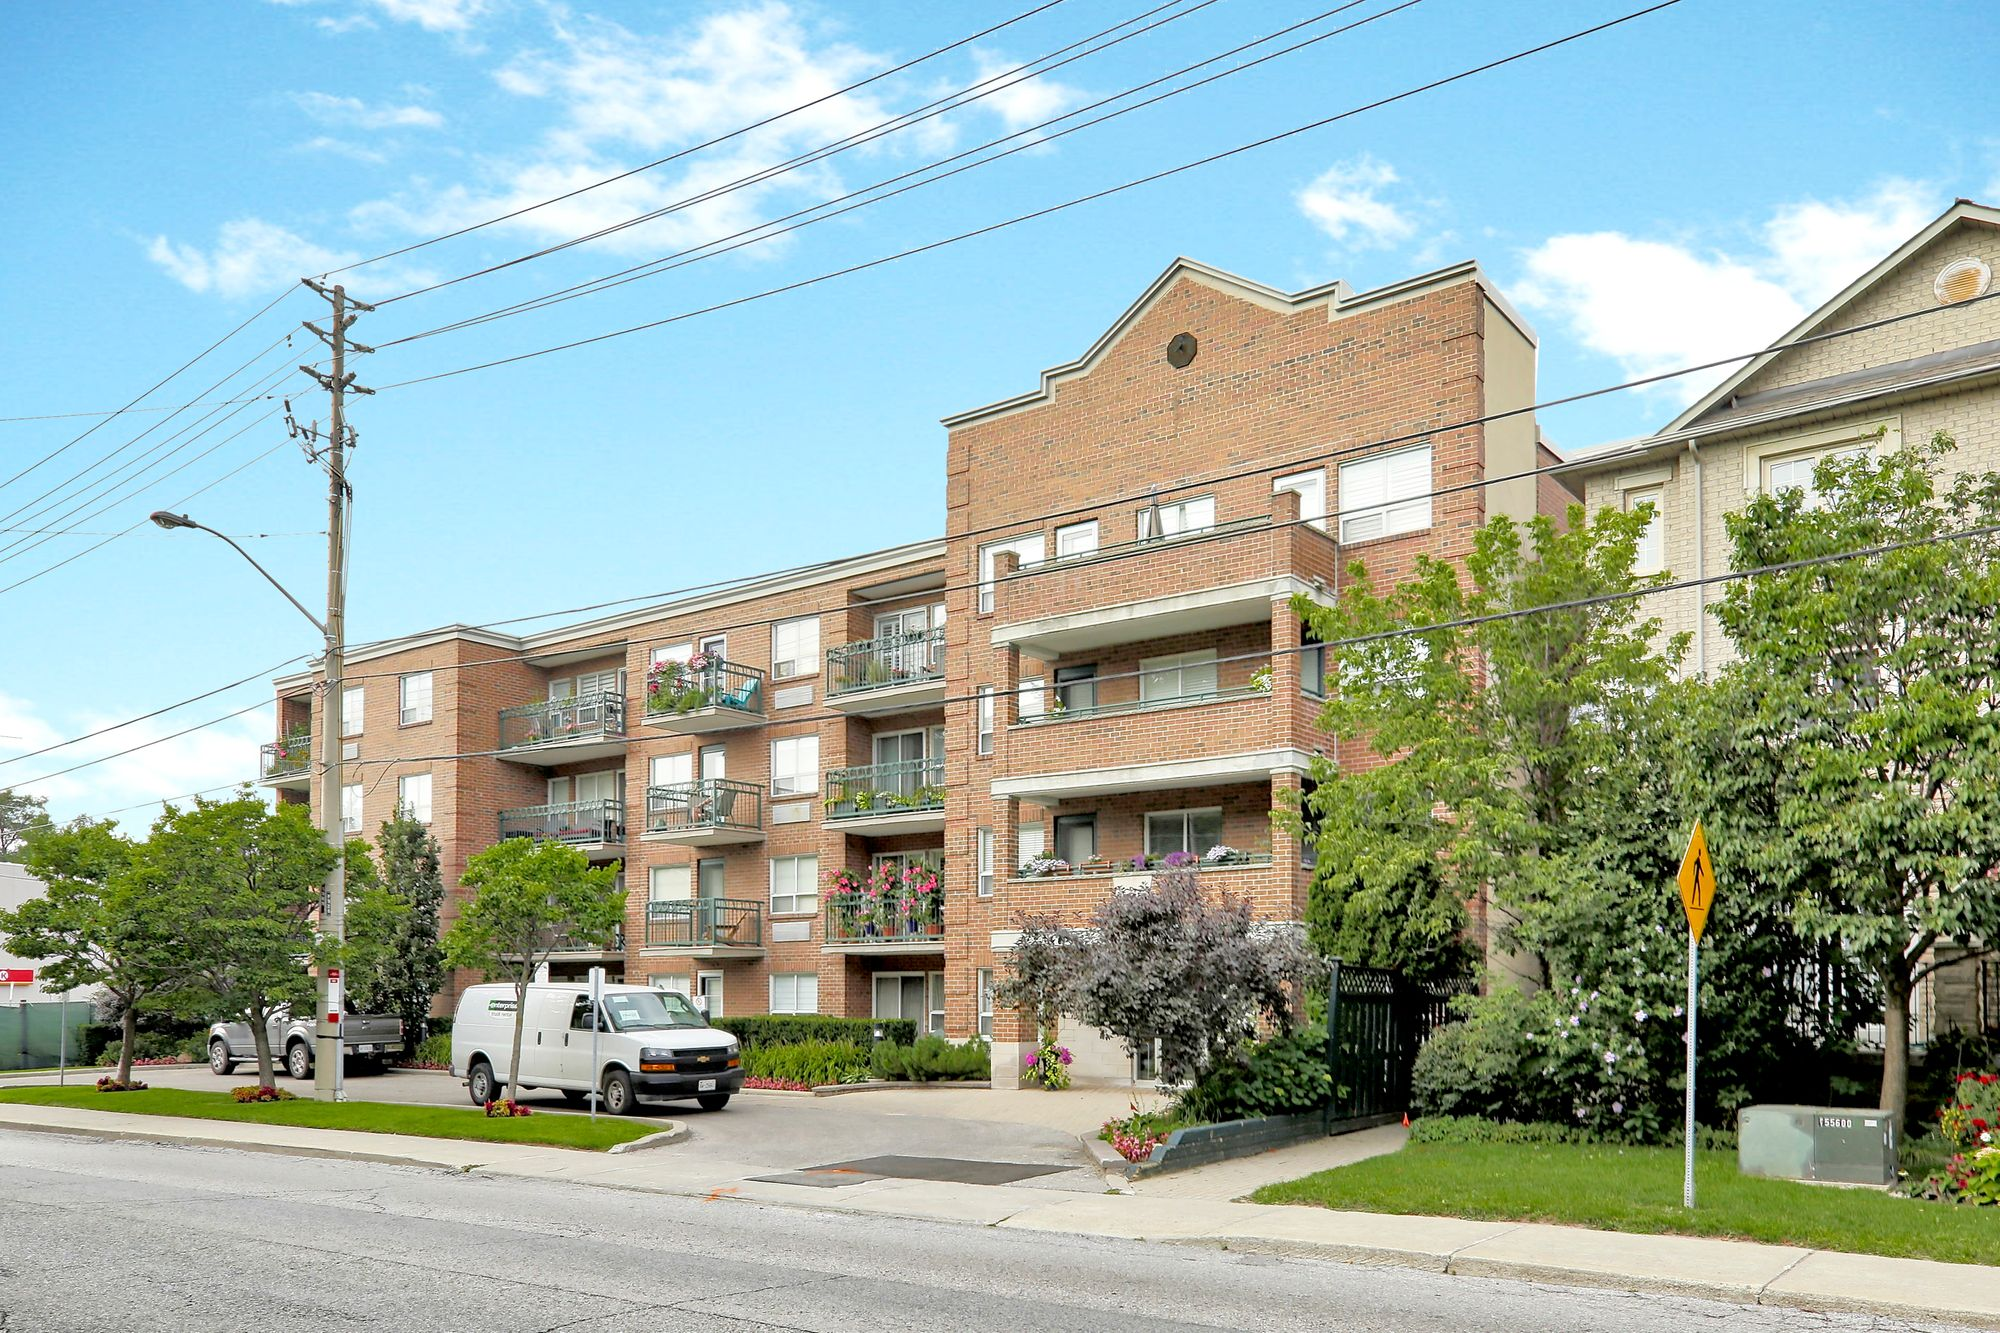 928 Millwood Rd. This condo townhouse at 928 Millwood Rd is located in  East York, Toronto - image #1 of 4 by Strata.ca